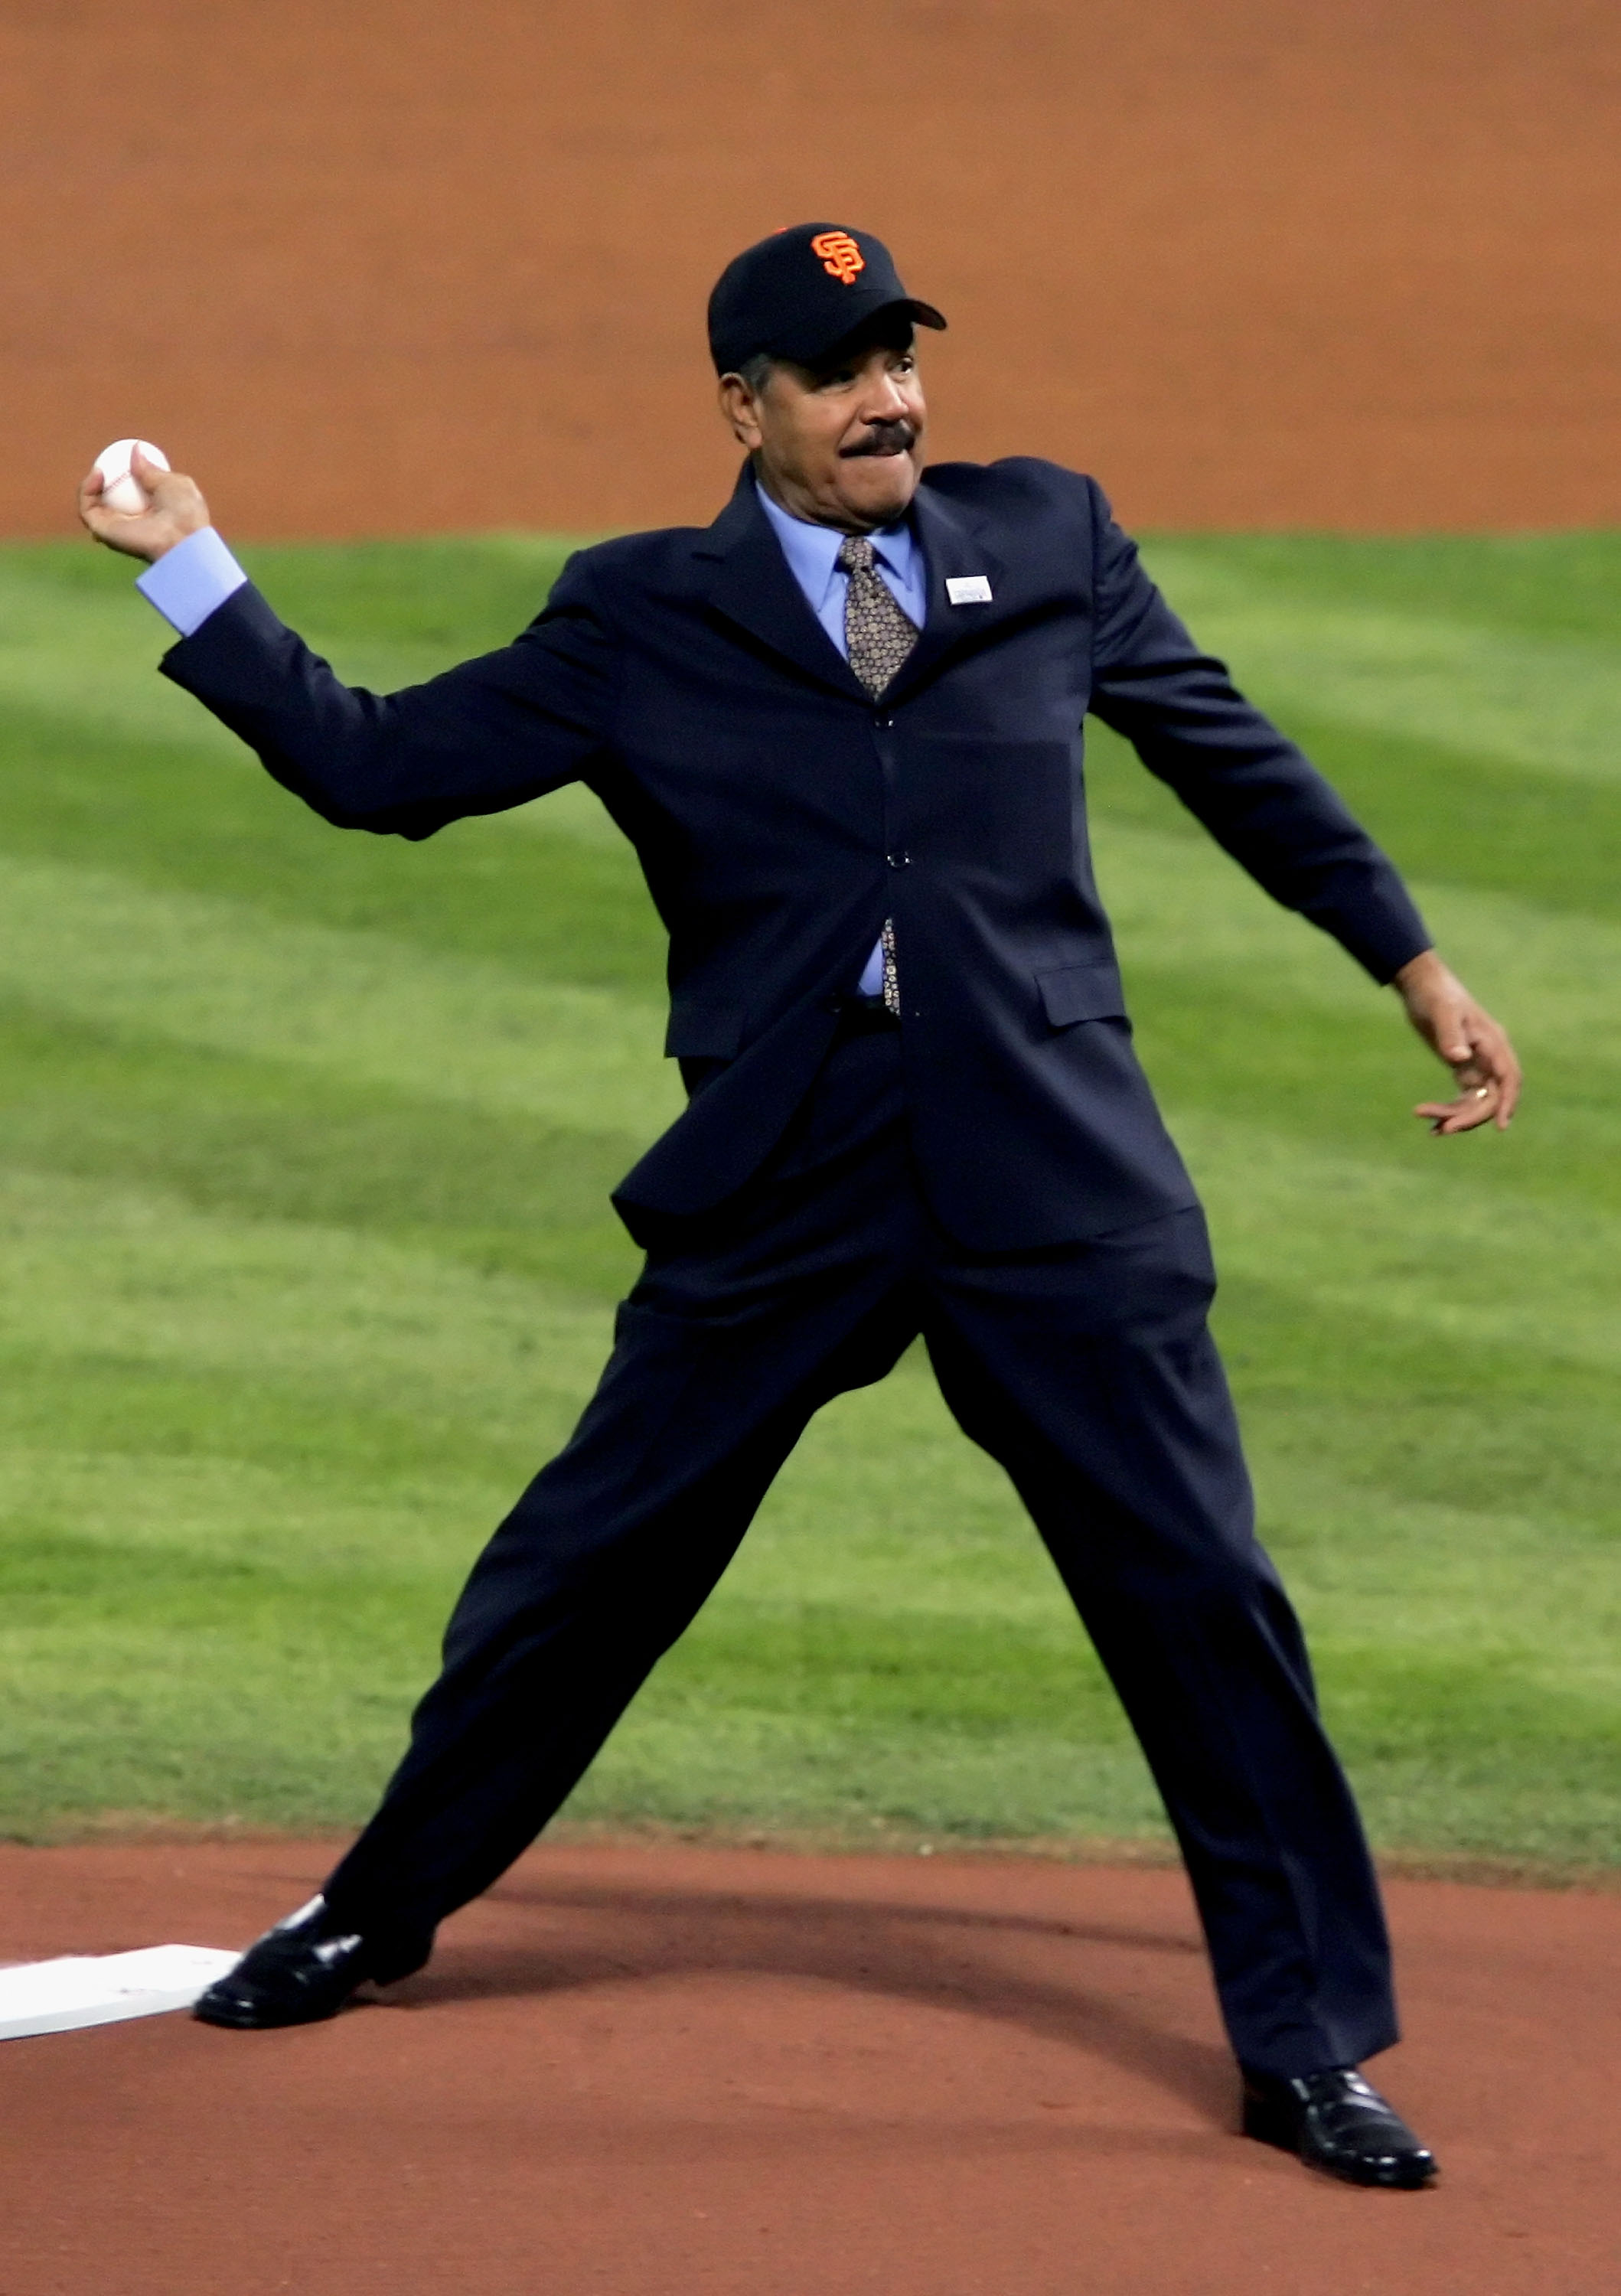 HOUSTON - OCTOBER 26:  Juan Marichal of the Major League Baseball Latino Legends Team throws out the first pitch before the start of Game Four of the 2005 Major League Baseball World Series between the Chicago White Sox and the Houston Astros at Minute Ma